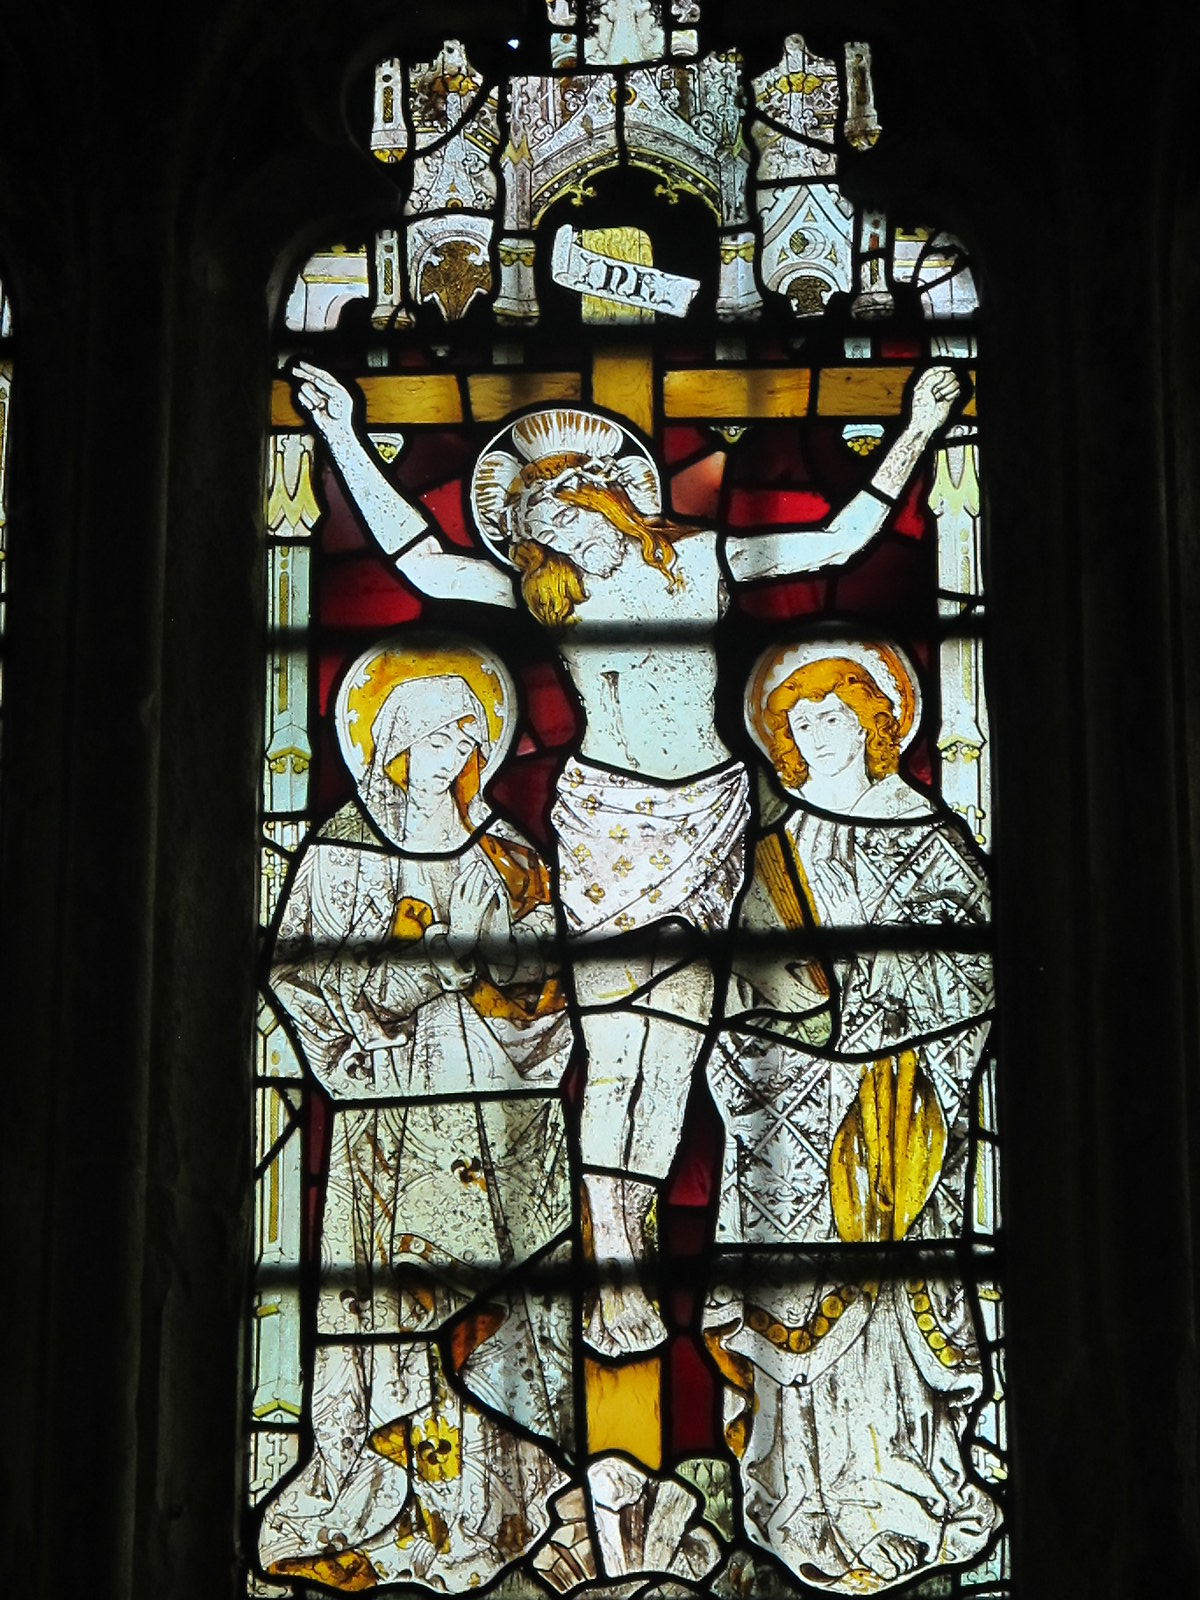 The Man Himself, stained glass window, St. Andrew's, Mottisfont SWC Walk 58 Mottisfont and Dunbridge to Romsey taken by Karen C.